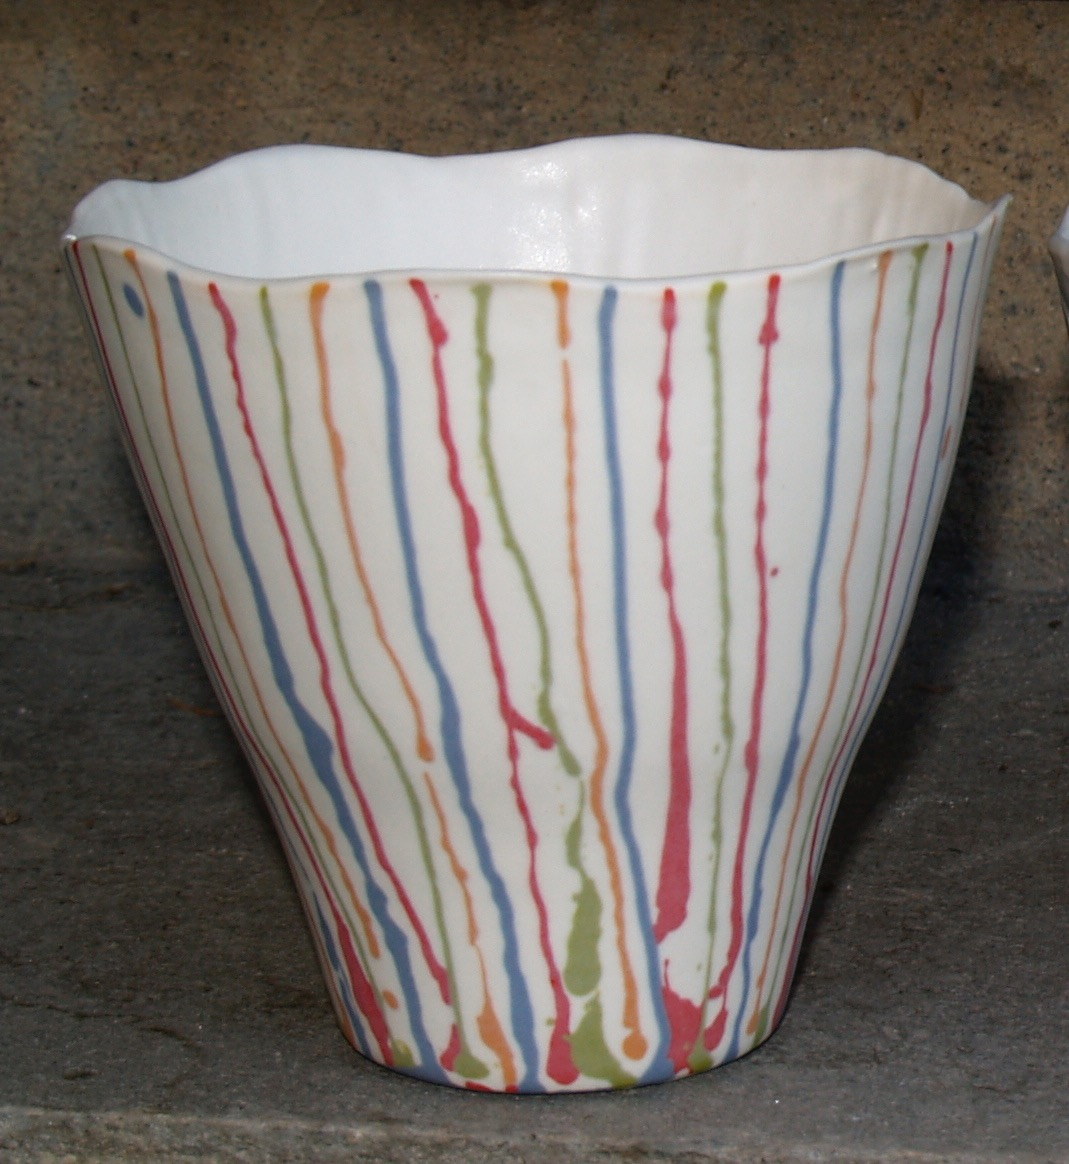 Small porcelain bowl with colourful stripes